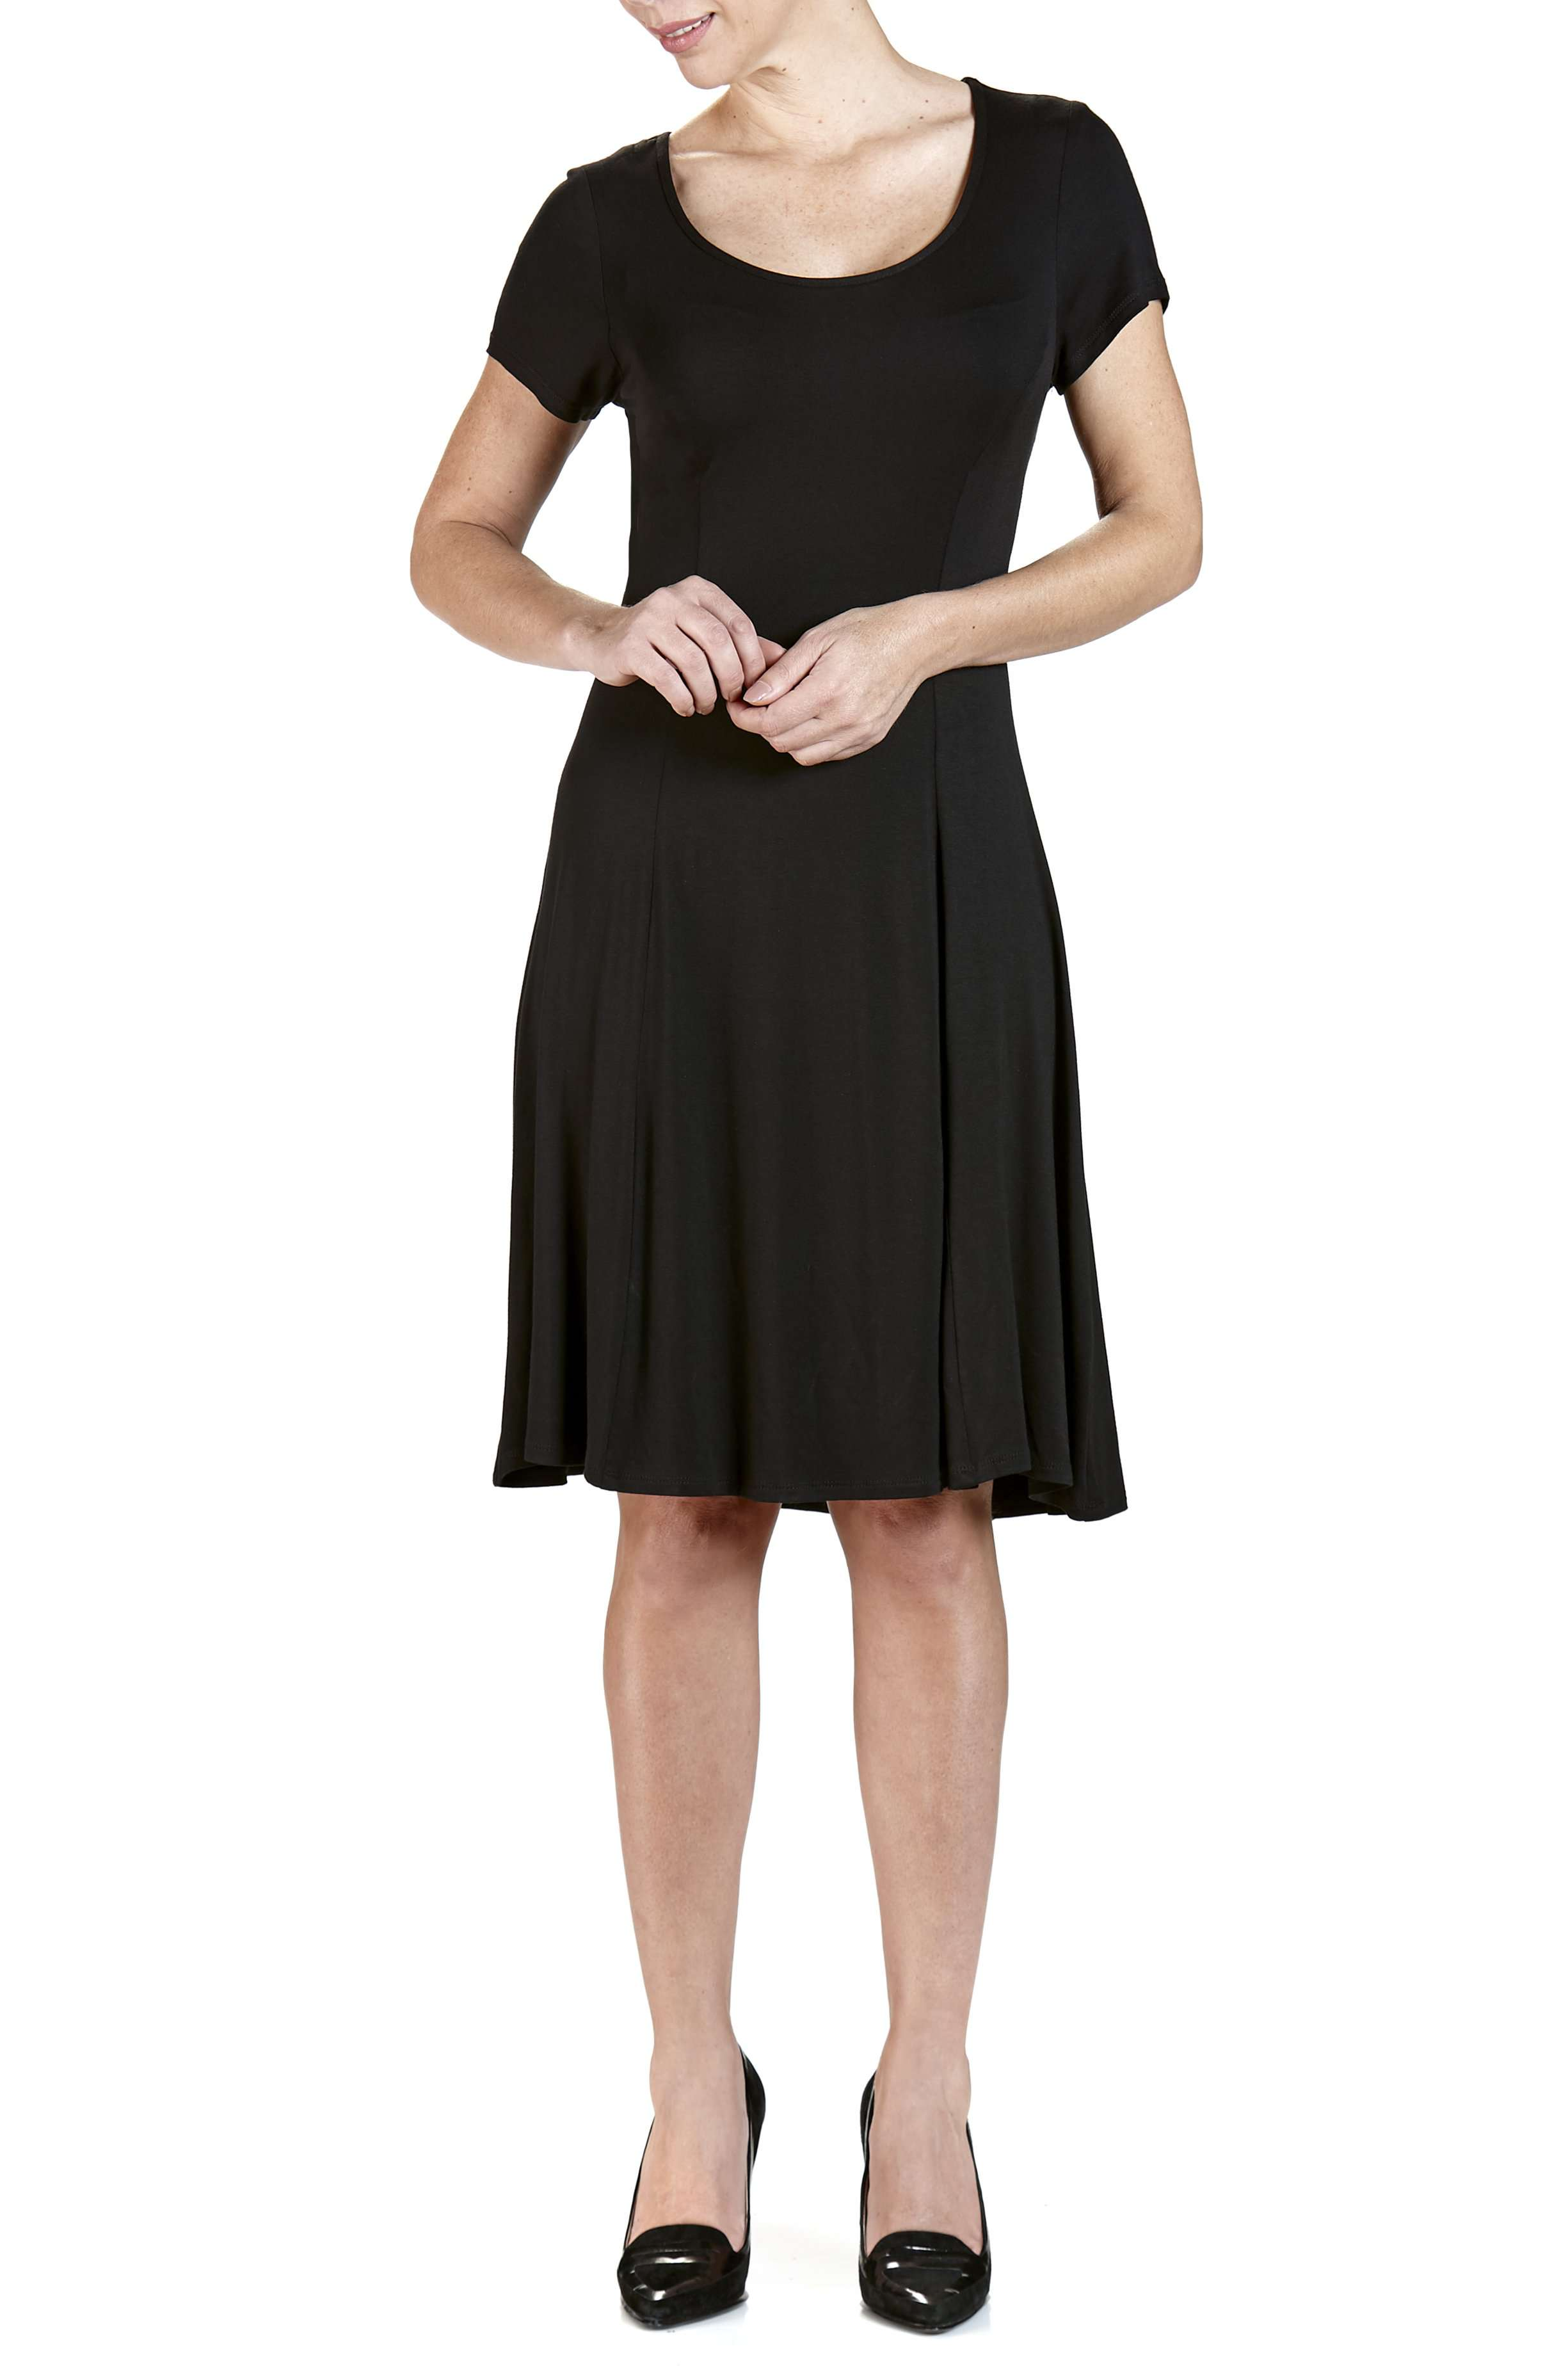 Dress in Quality Jersey Knit Fabric-Wardrobe Essential-This is you Go To Black Dress-Made in Canada - Yvonne Marie